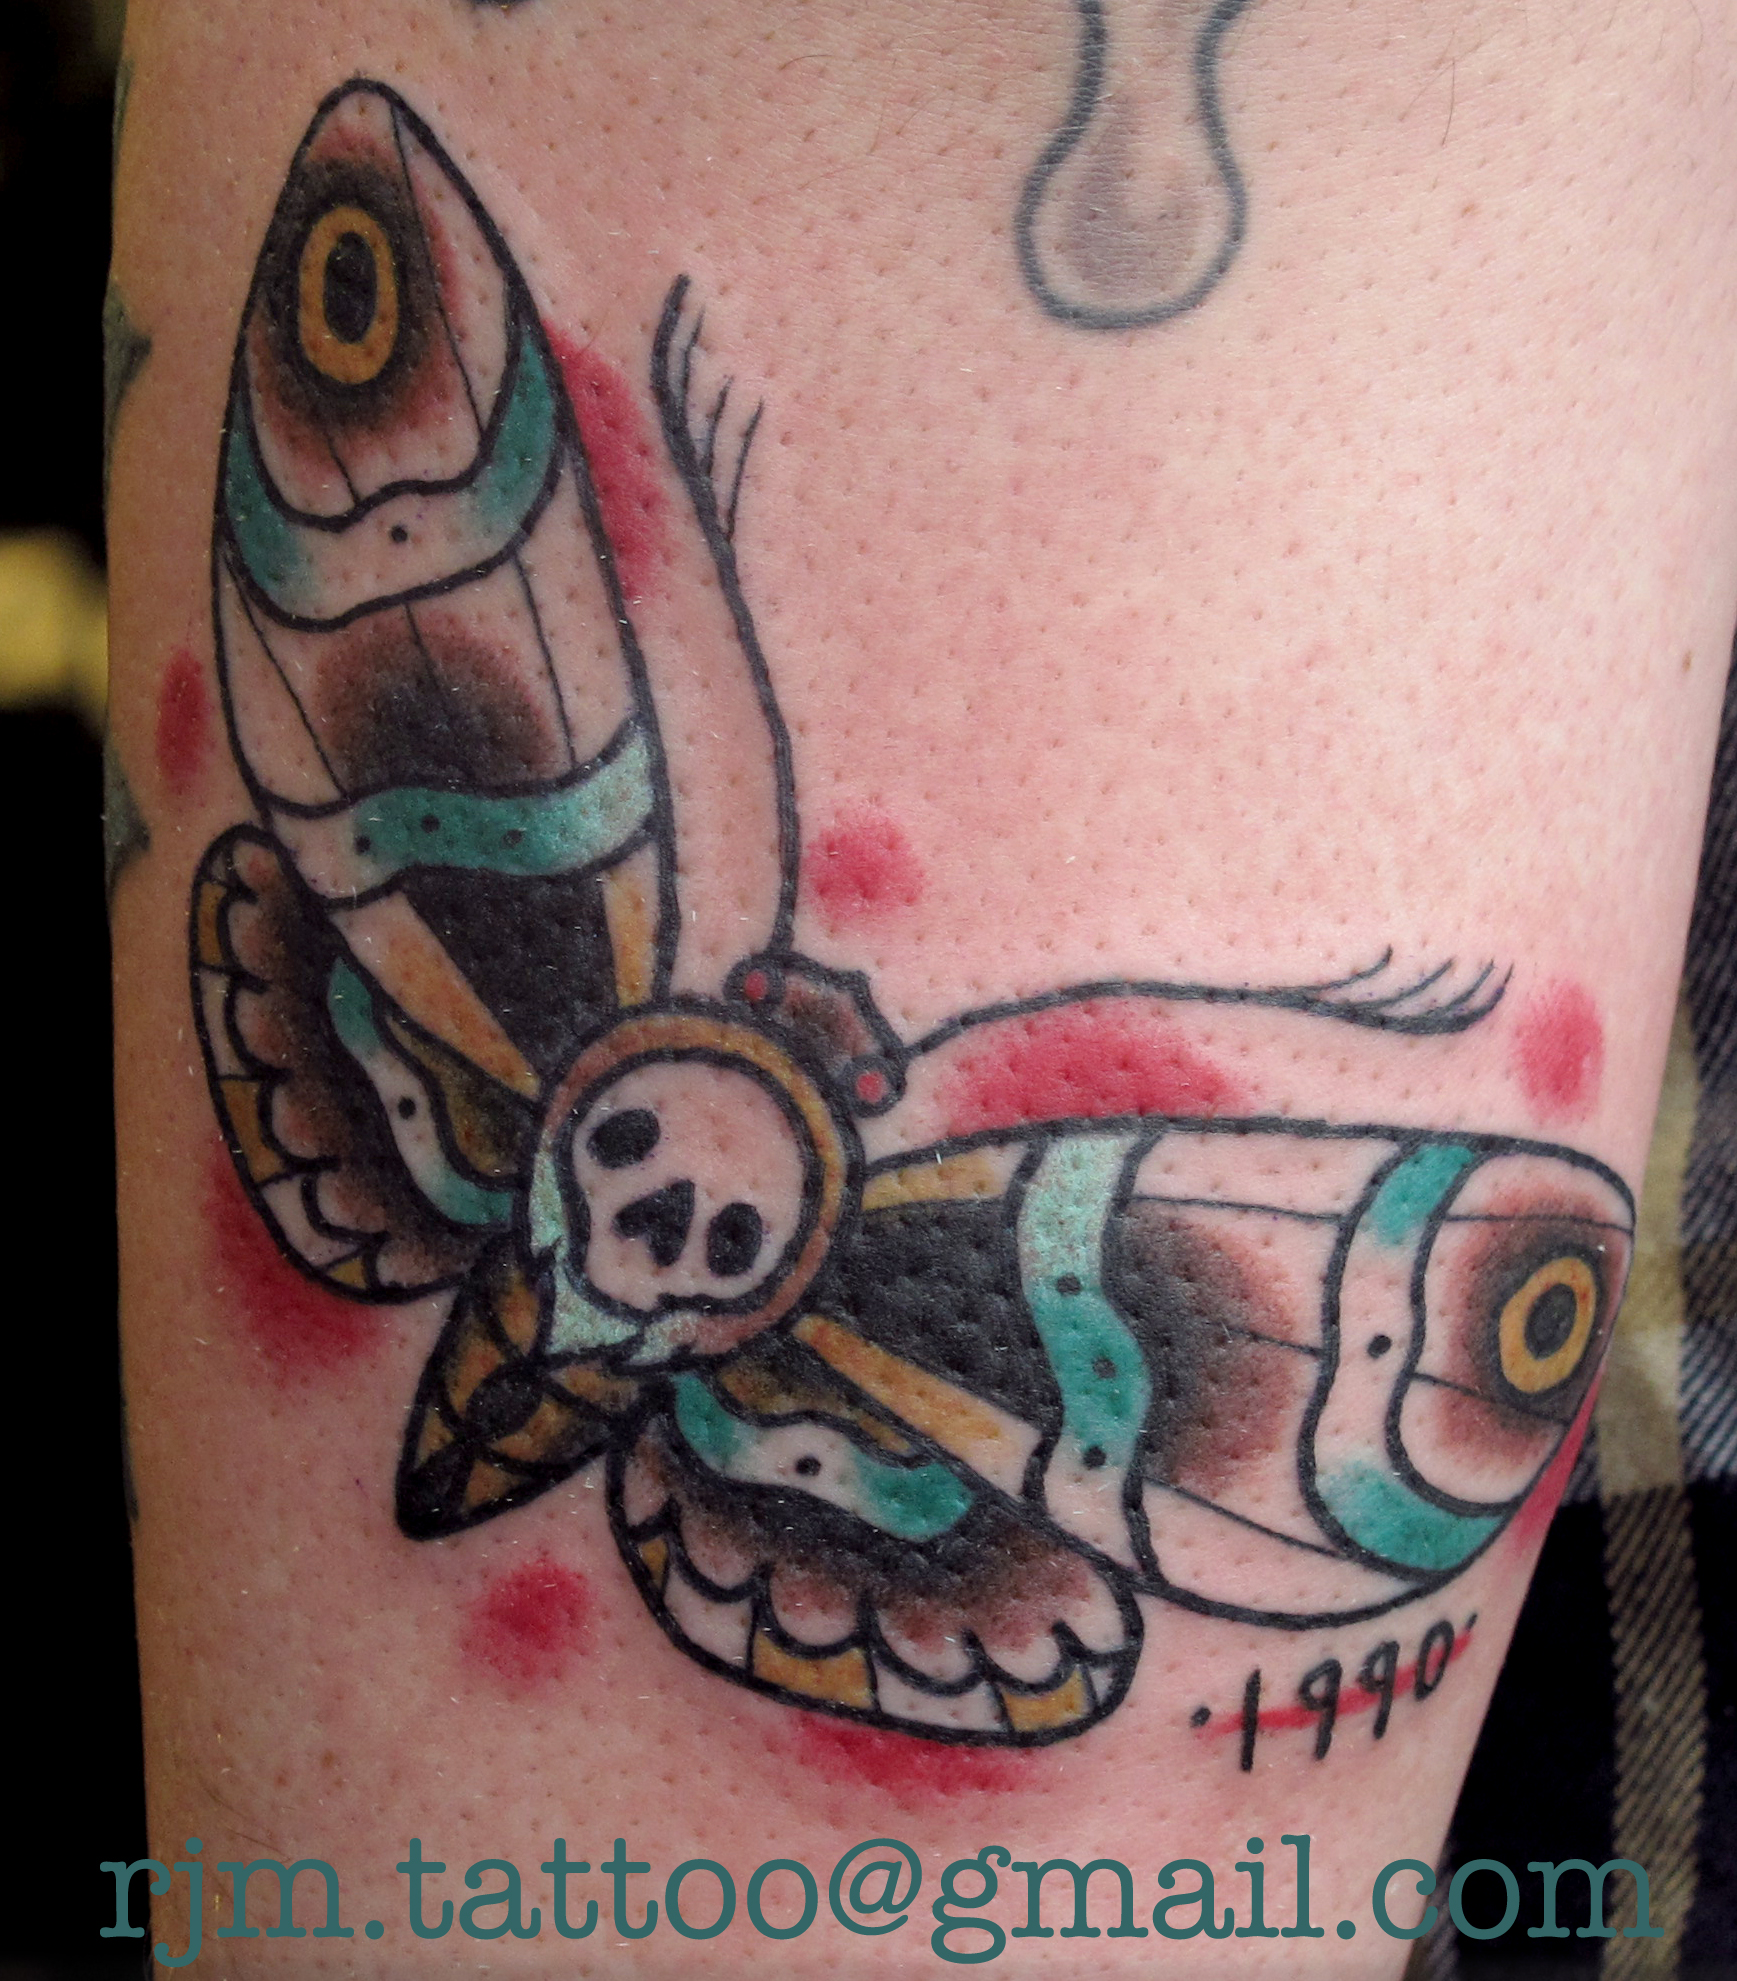 The Mexican Sugar Skull Tattoo